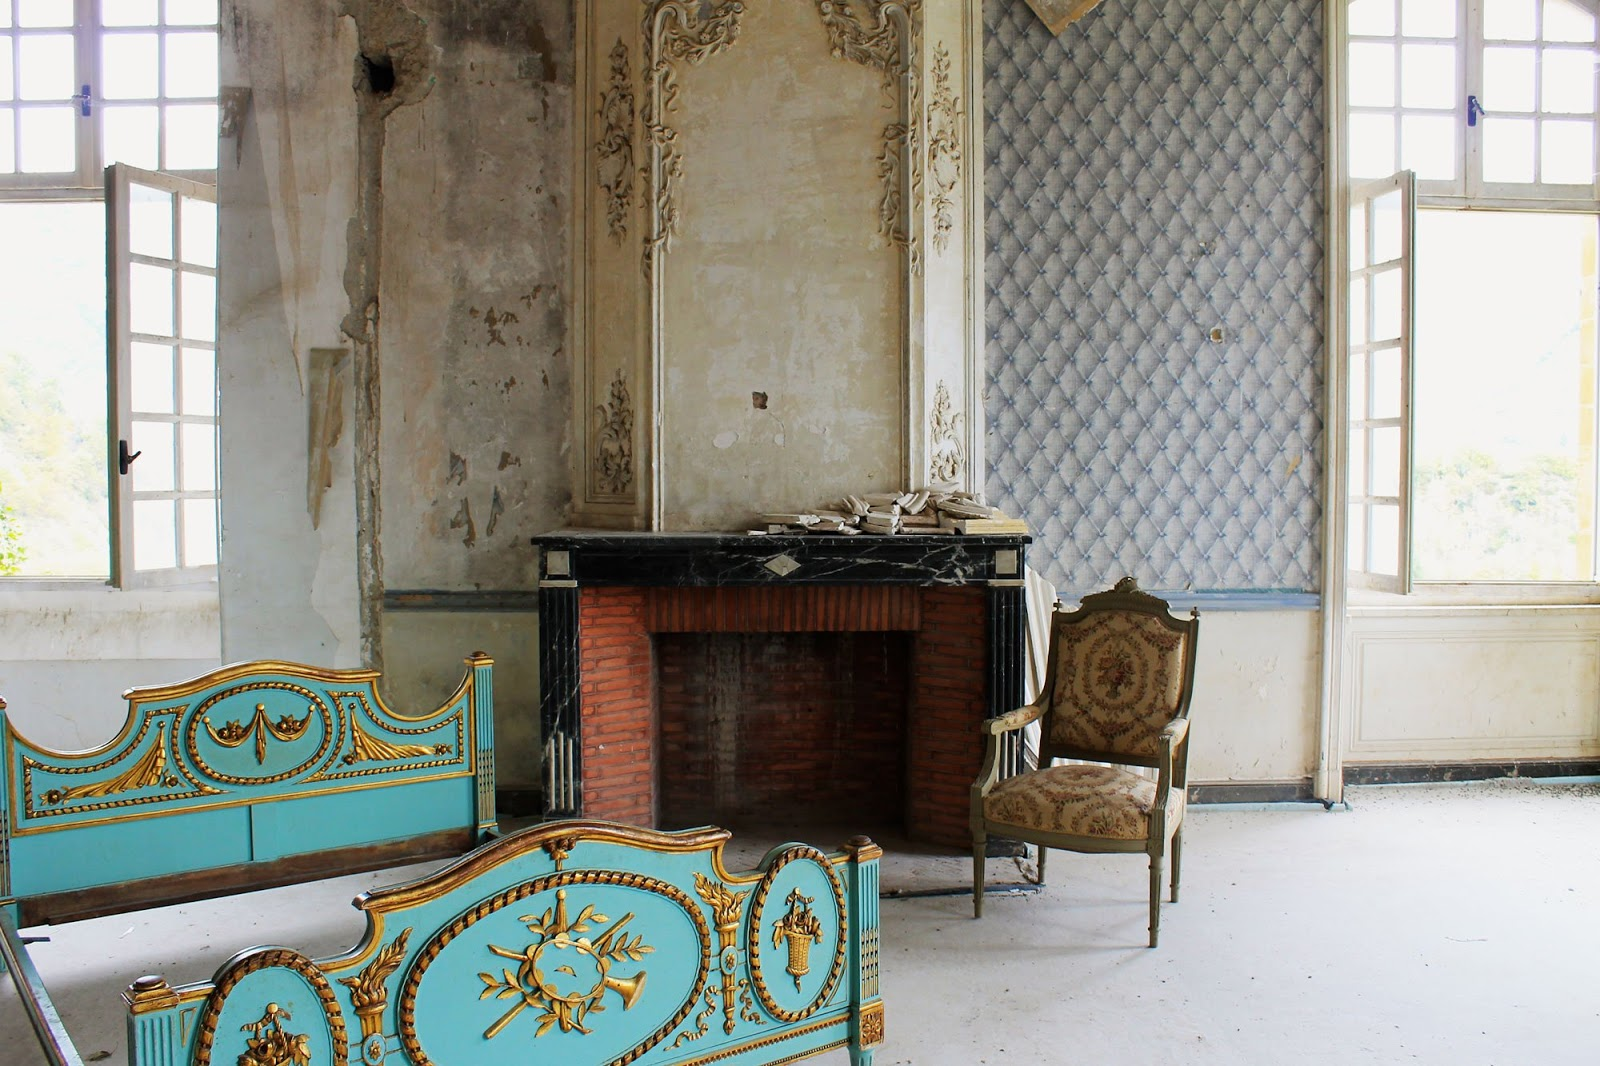 Fanciful blue and gilded gold bed in decaying room of Chateau de Gudanes